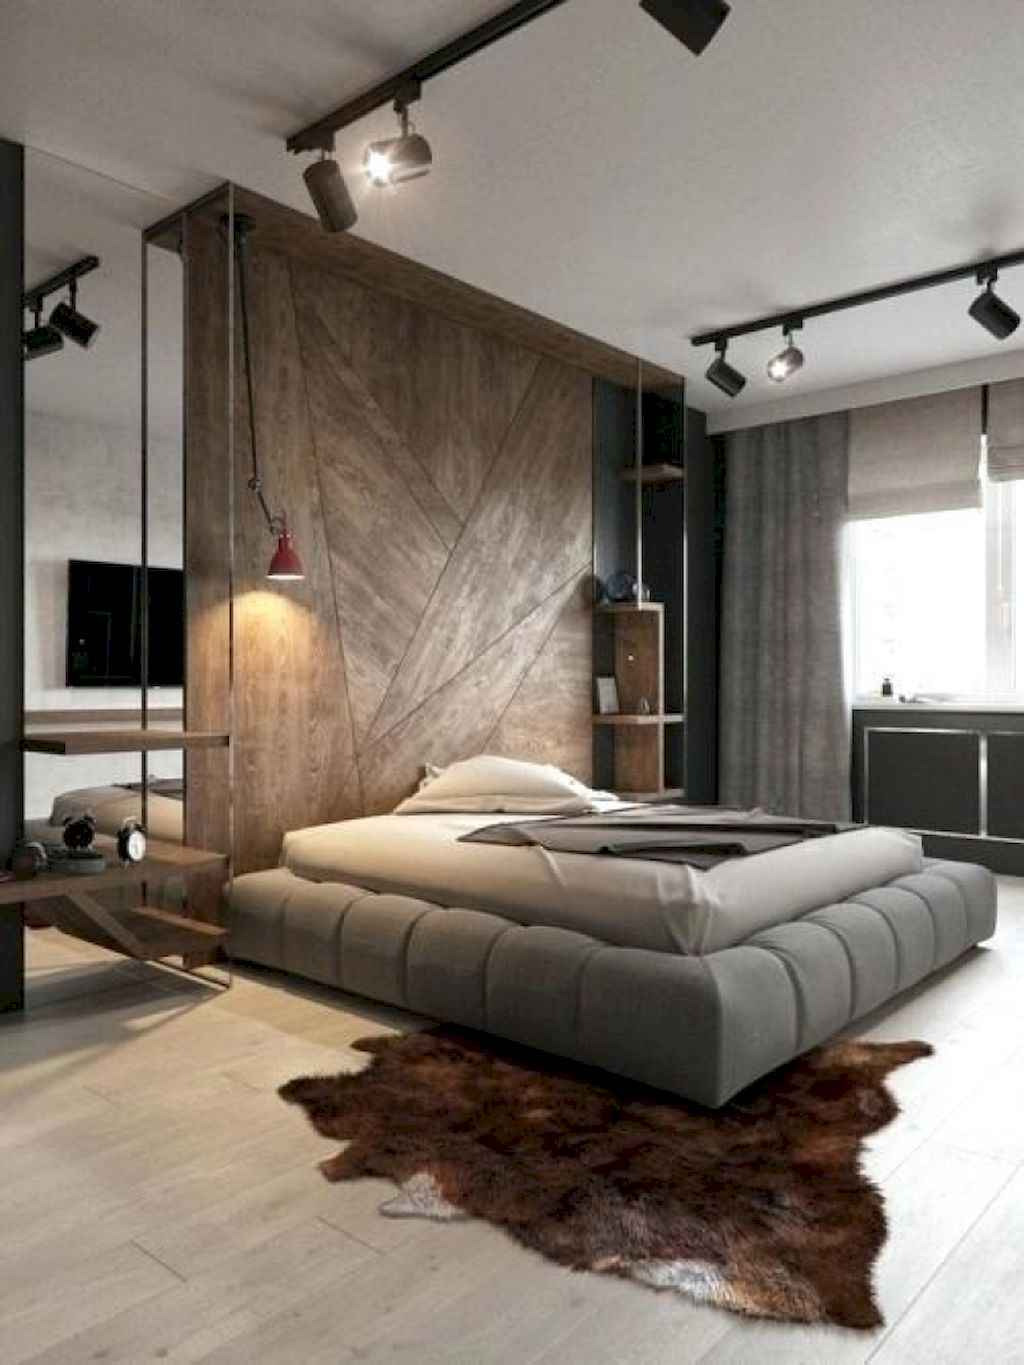 modern minimalist bedroom interior design ideas 27 modern minimalist bedroom design ideas for 2019